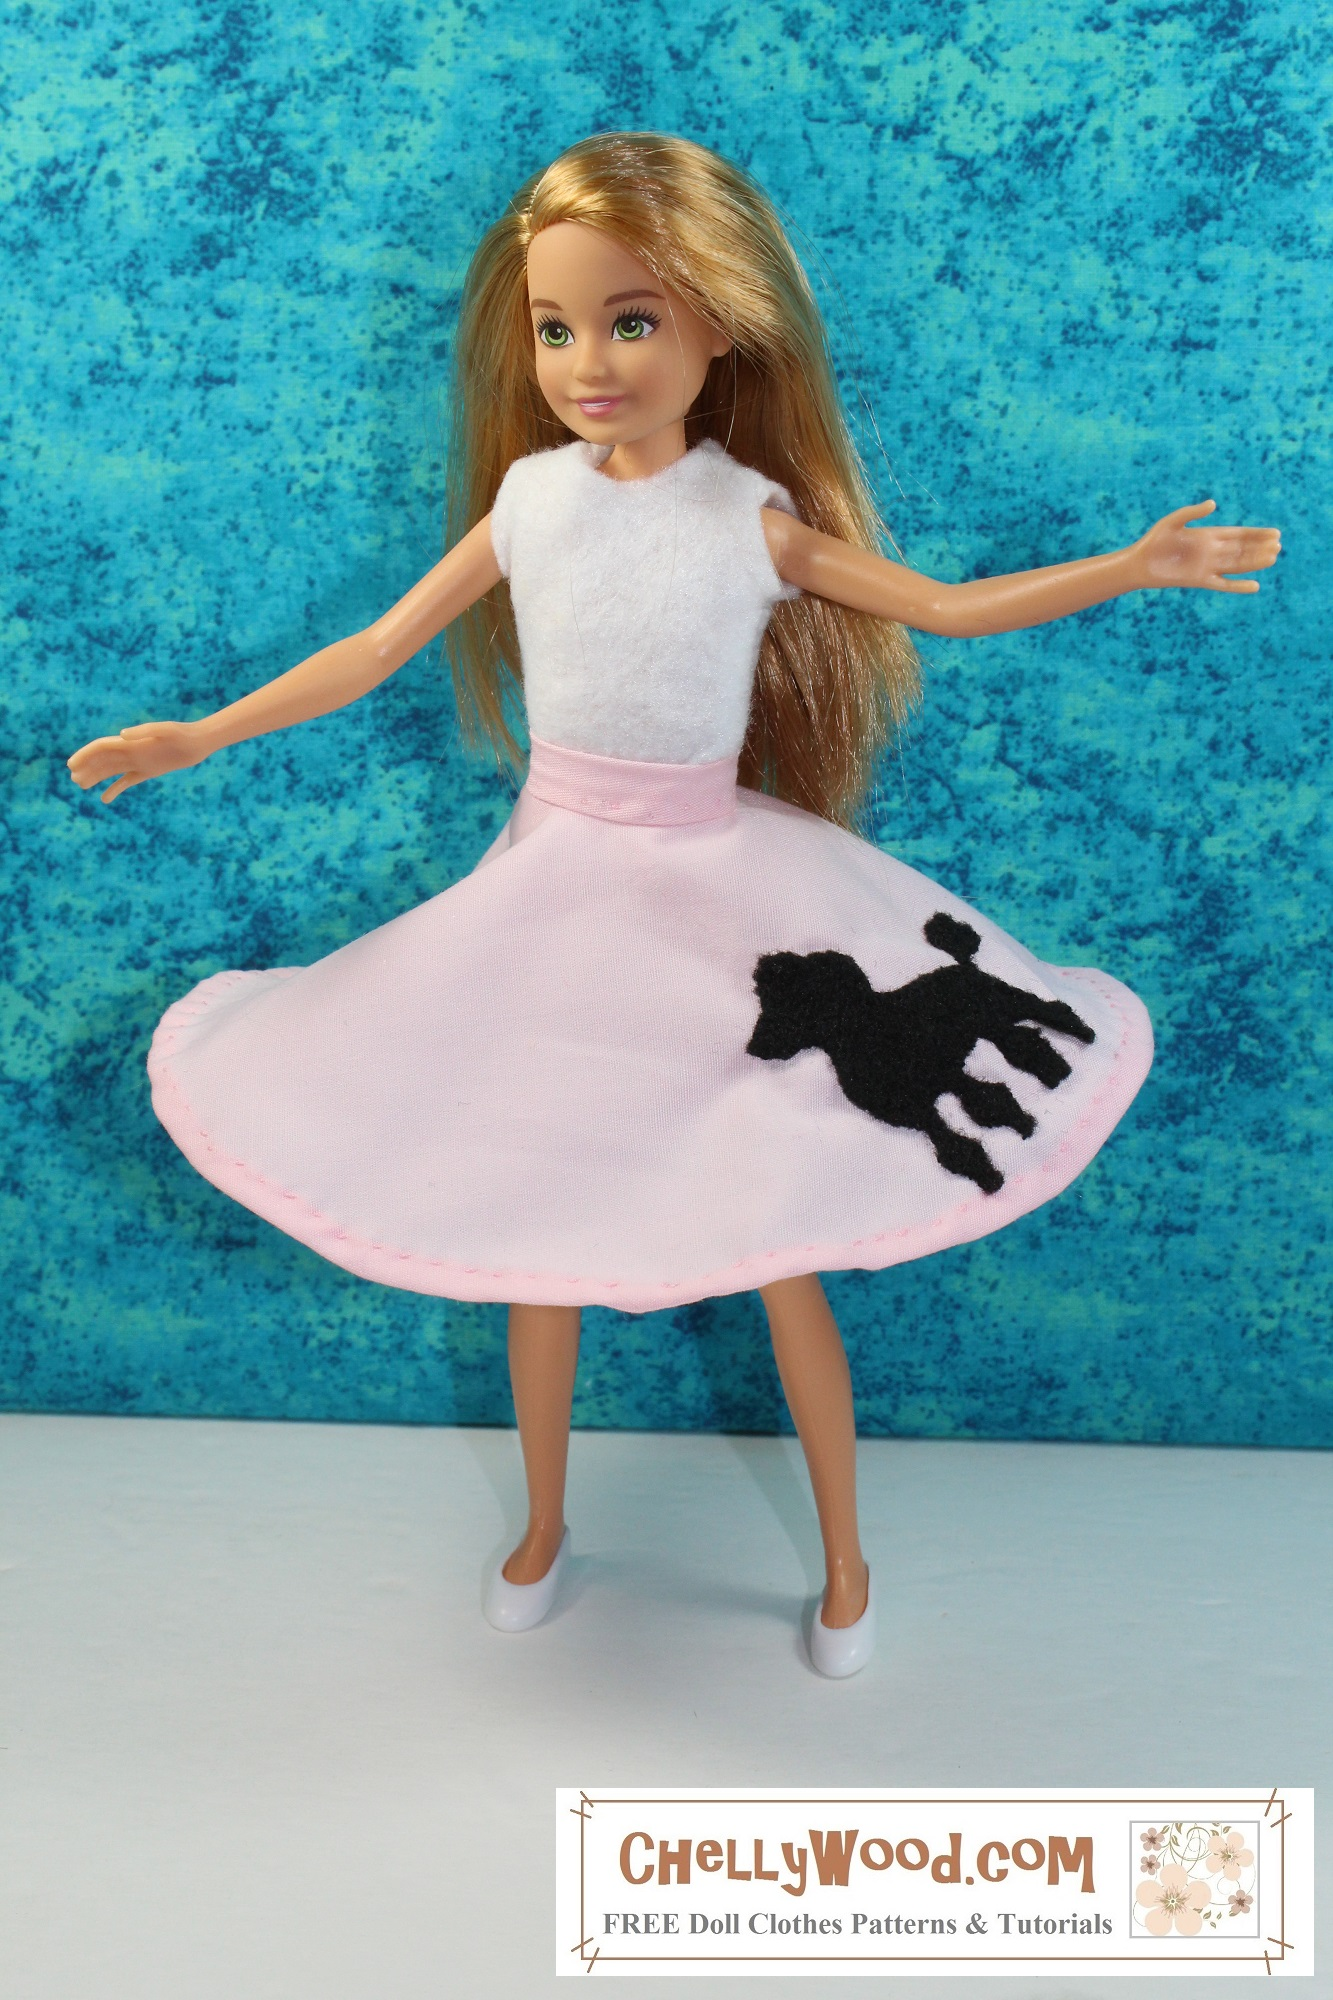 """The image shows a Mattel Stacie doll wearing handmade doll clothes that include a felt sleeveless shirt and a pink poodle skirt that flares outward, as if Stacie is spinning around. The overlay says, """"ChellyWood.com: free doll clothes patterns and tutorials,"""" reminding you to visit ChellyWood.com for your free printable sewing patterns for making doll clothes to fit dolls of many shapes and all different sizes. Would you like to make today's pink poodle skirt with a felt poodle patch sewn onto the skirt, along with the easy-to-sew felt sleeveless top? Please click on the link in the caption, and it will take you to the page where you can download and print the free printable PDF sewing patterns for making this outfit."""